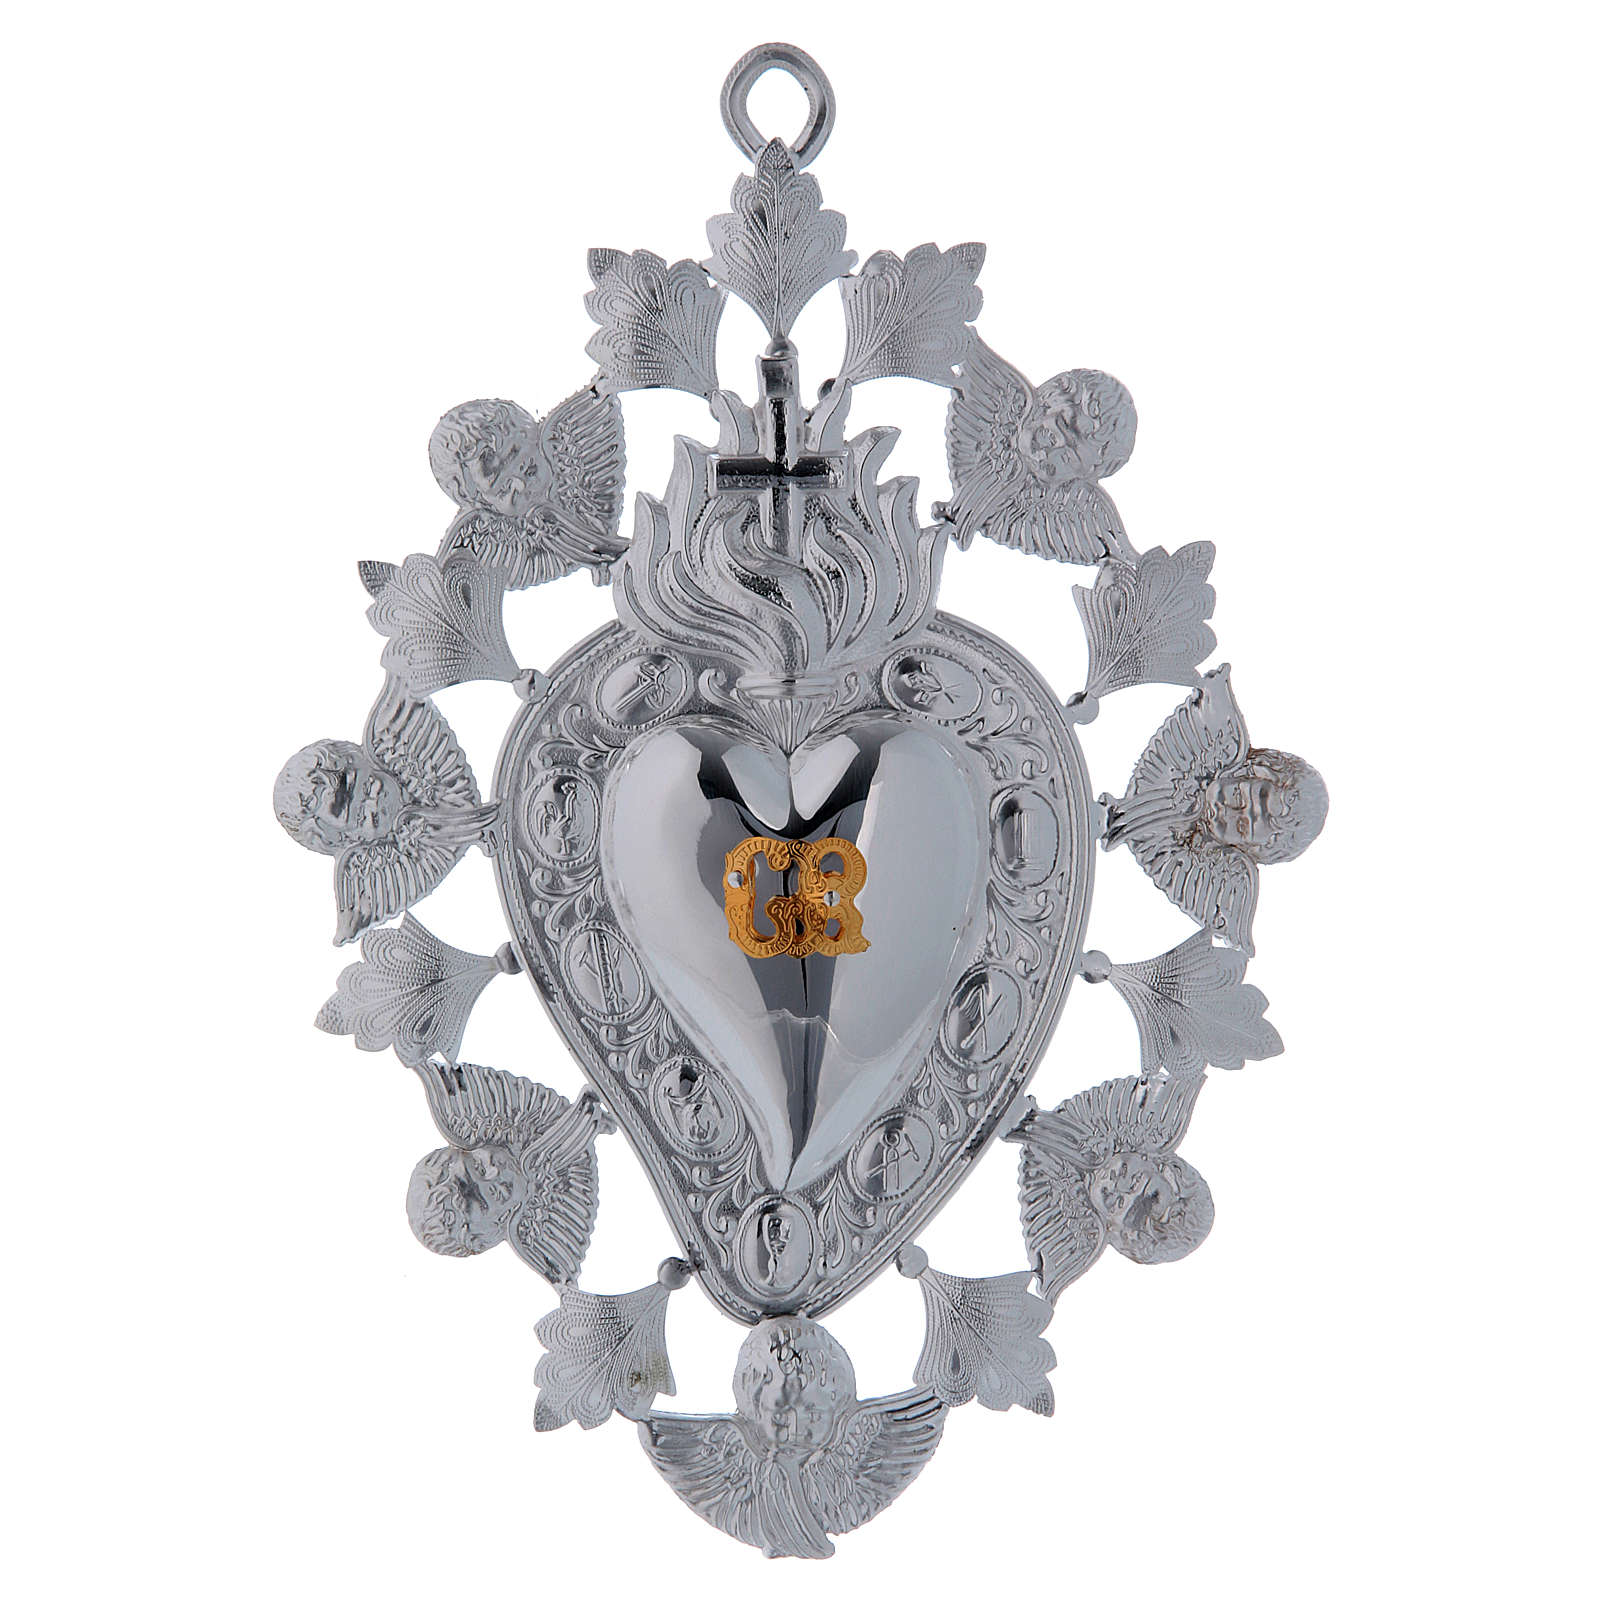 Ex-voto, heart with flame angels and decorations 13x20cm 3